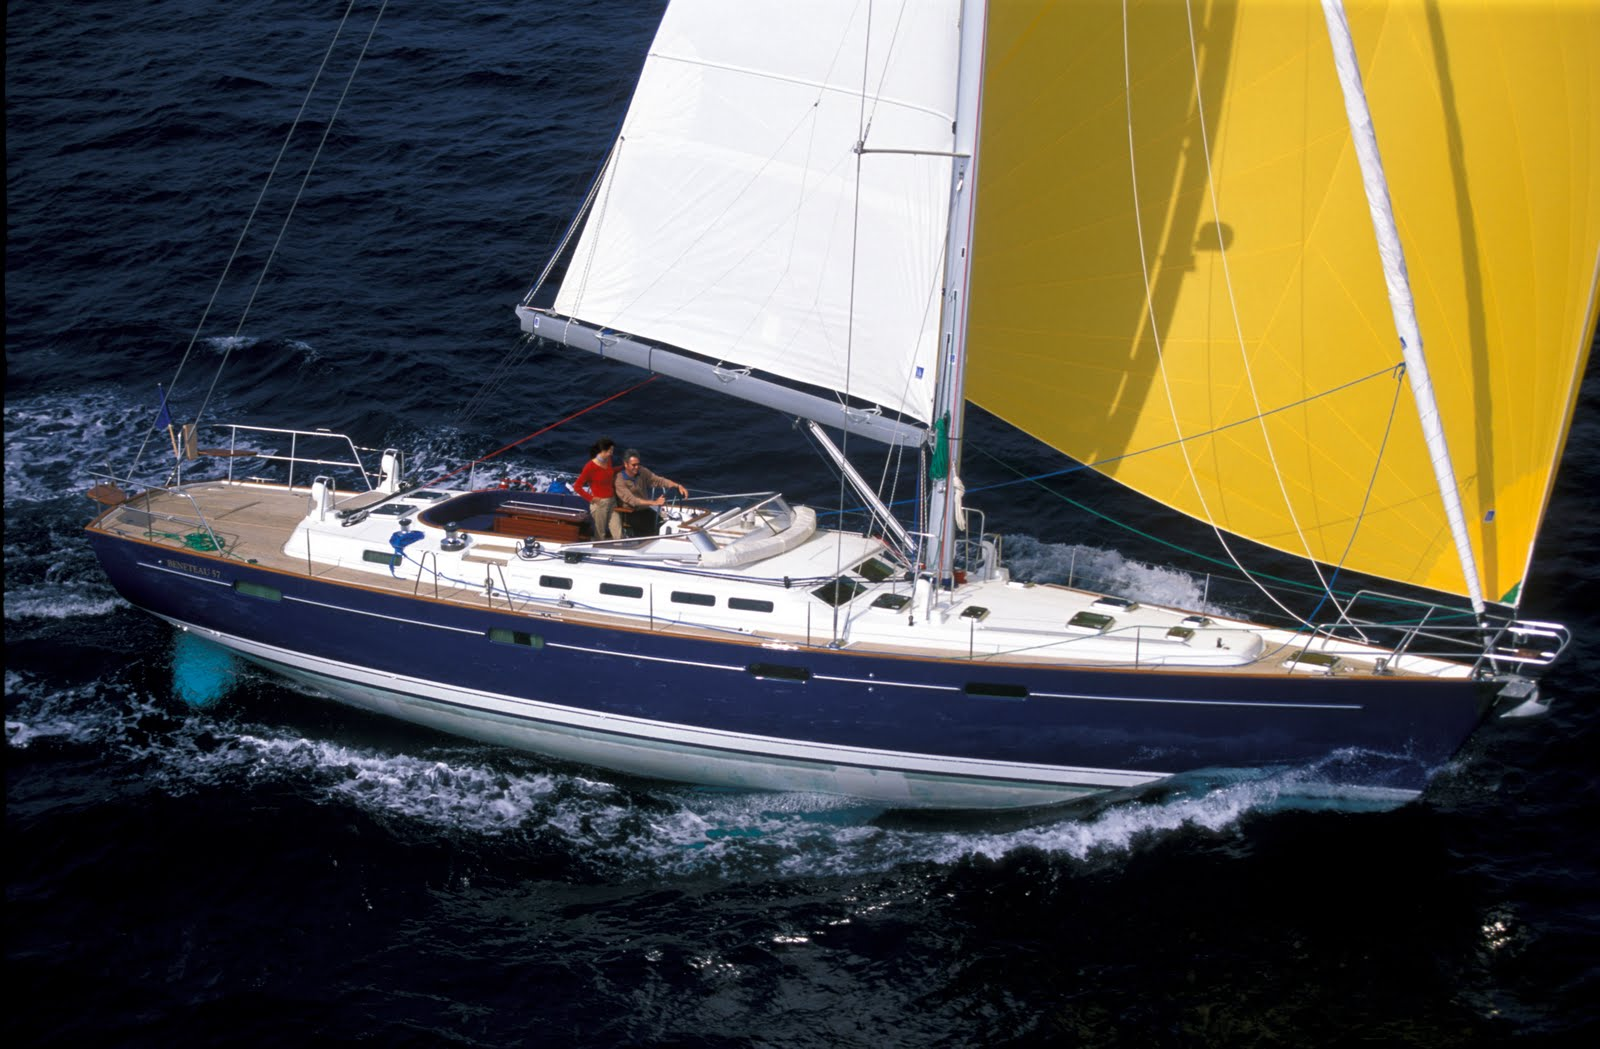 Beneteau 57 Yacht Sailboat for sale